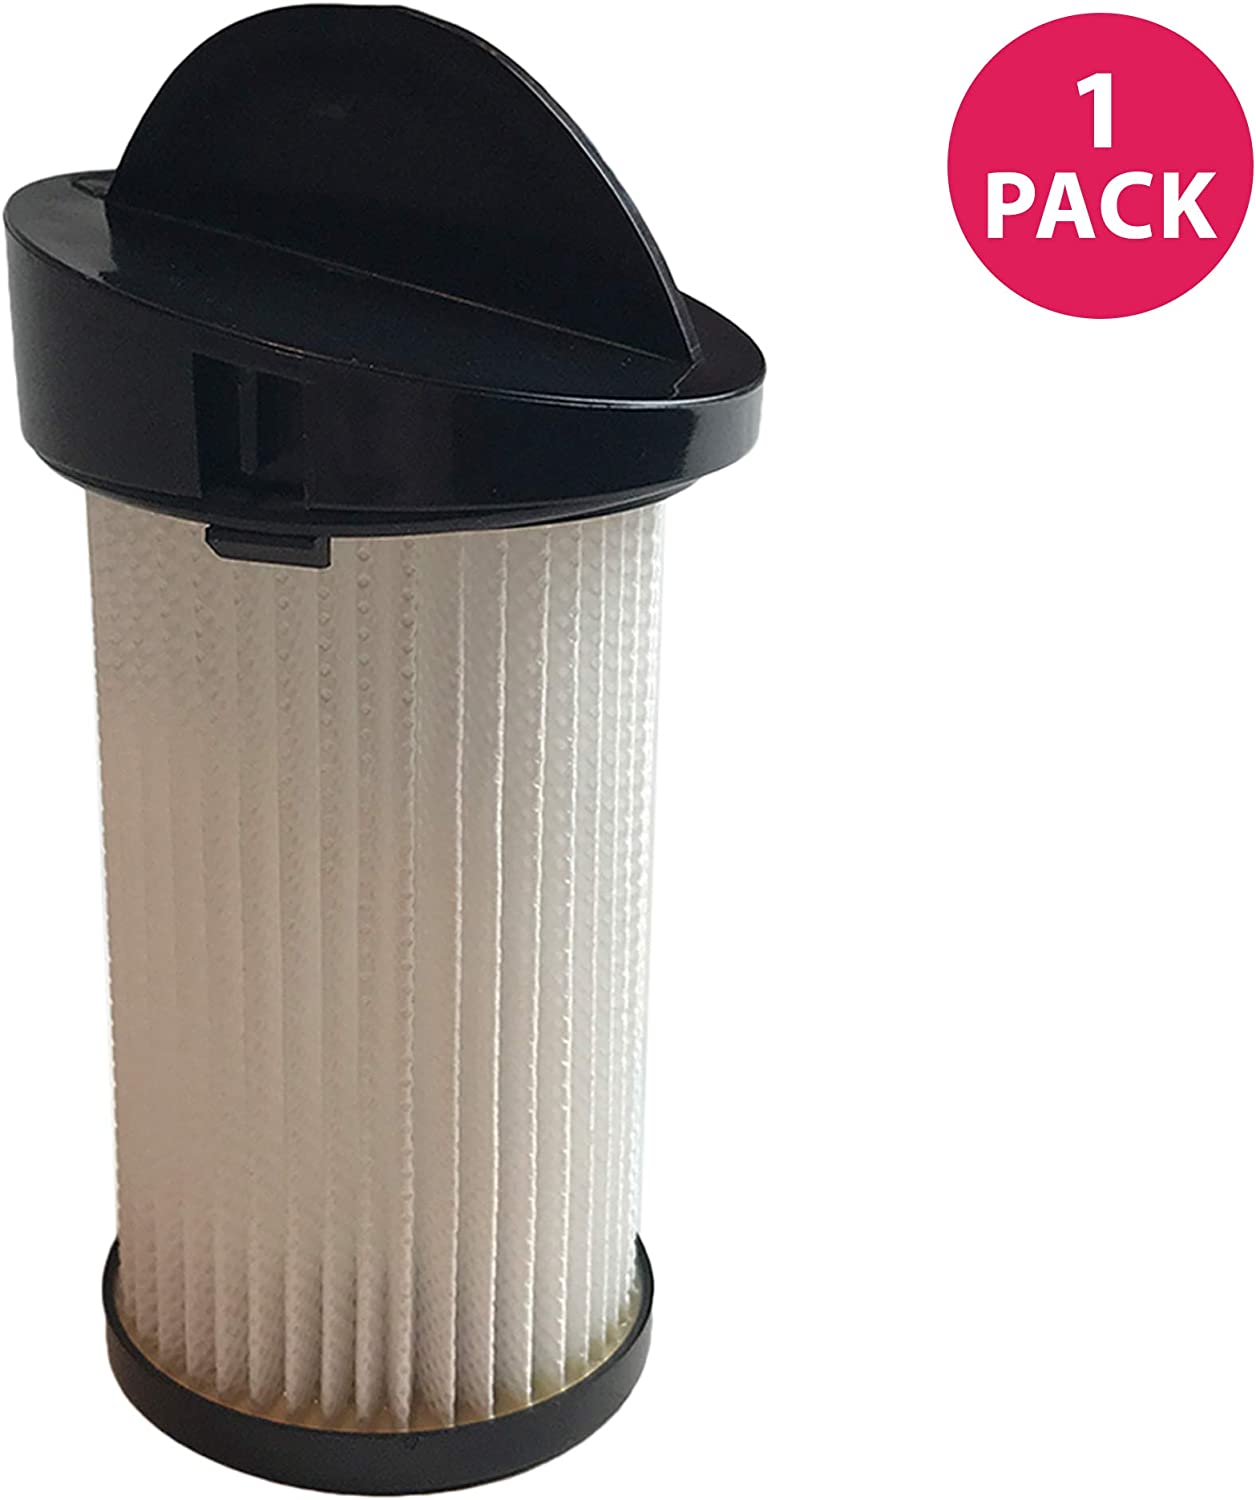 Think Crucial Replacement for Eye-Vac Pre-Motor Filter Fits Eye-Vac Professional Units, Compatible to Part # EV-PMF, Washable & Reusable